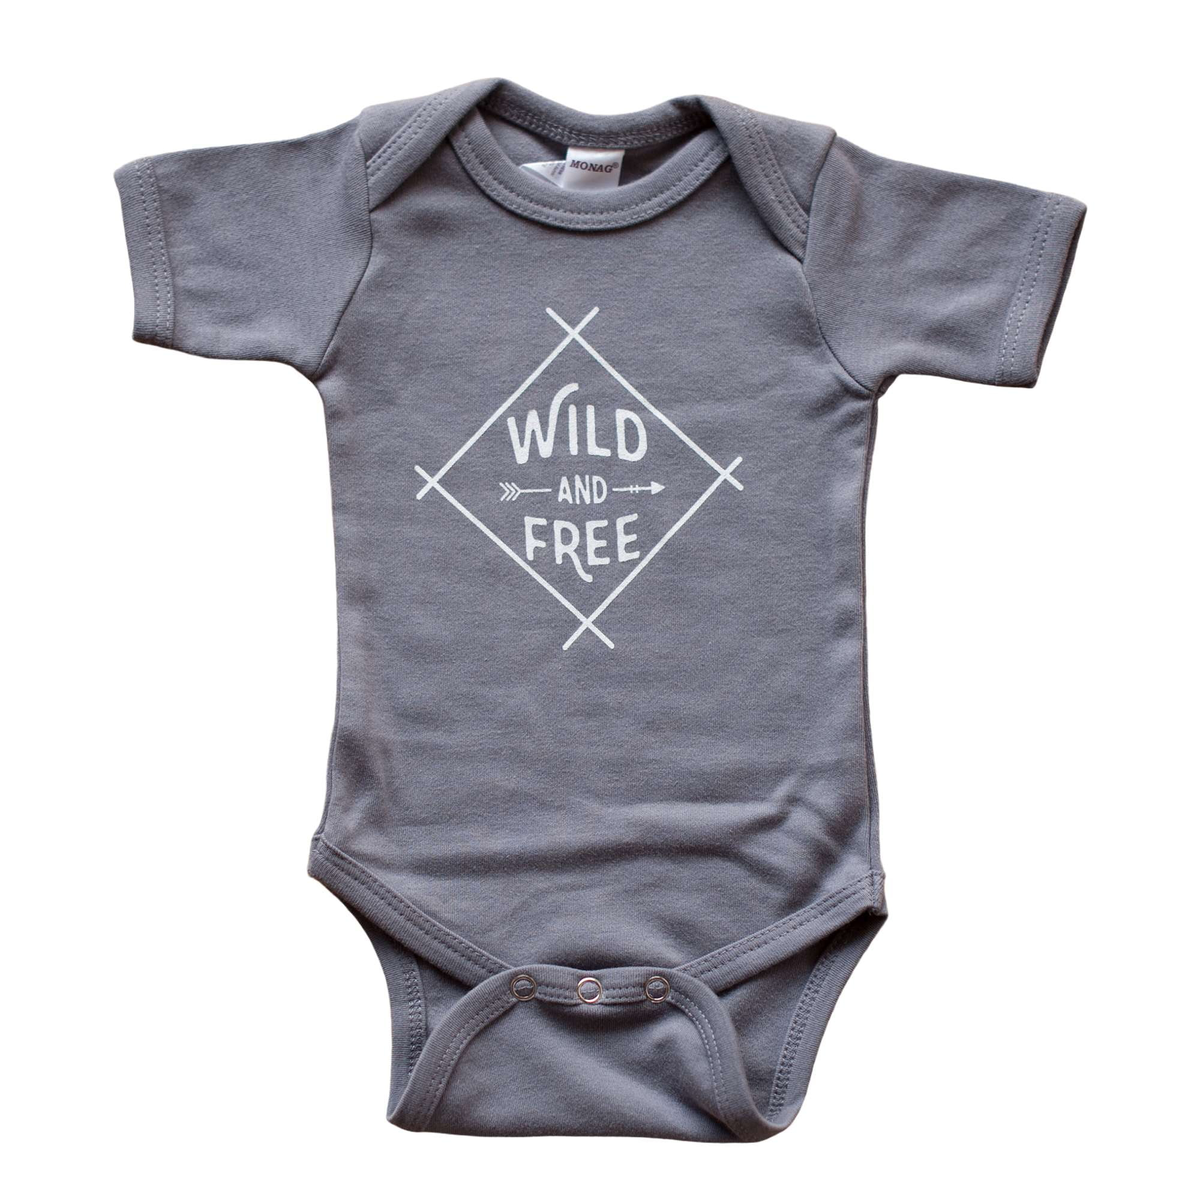 Wild and Free Baby Bodysuit - Sweetpea and Co.